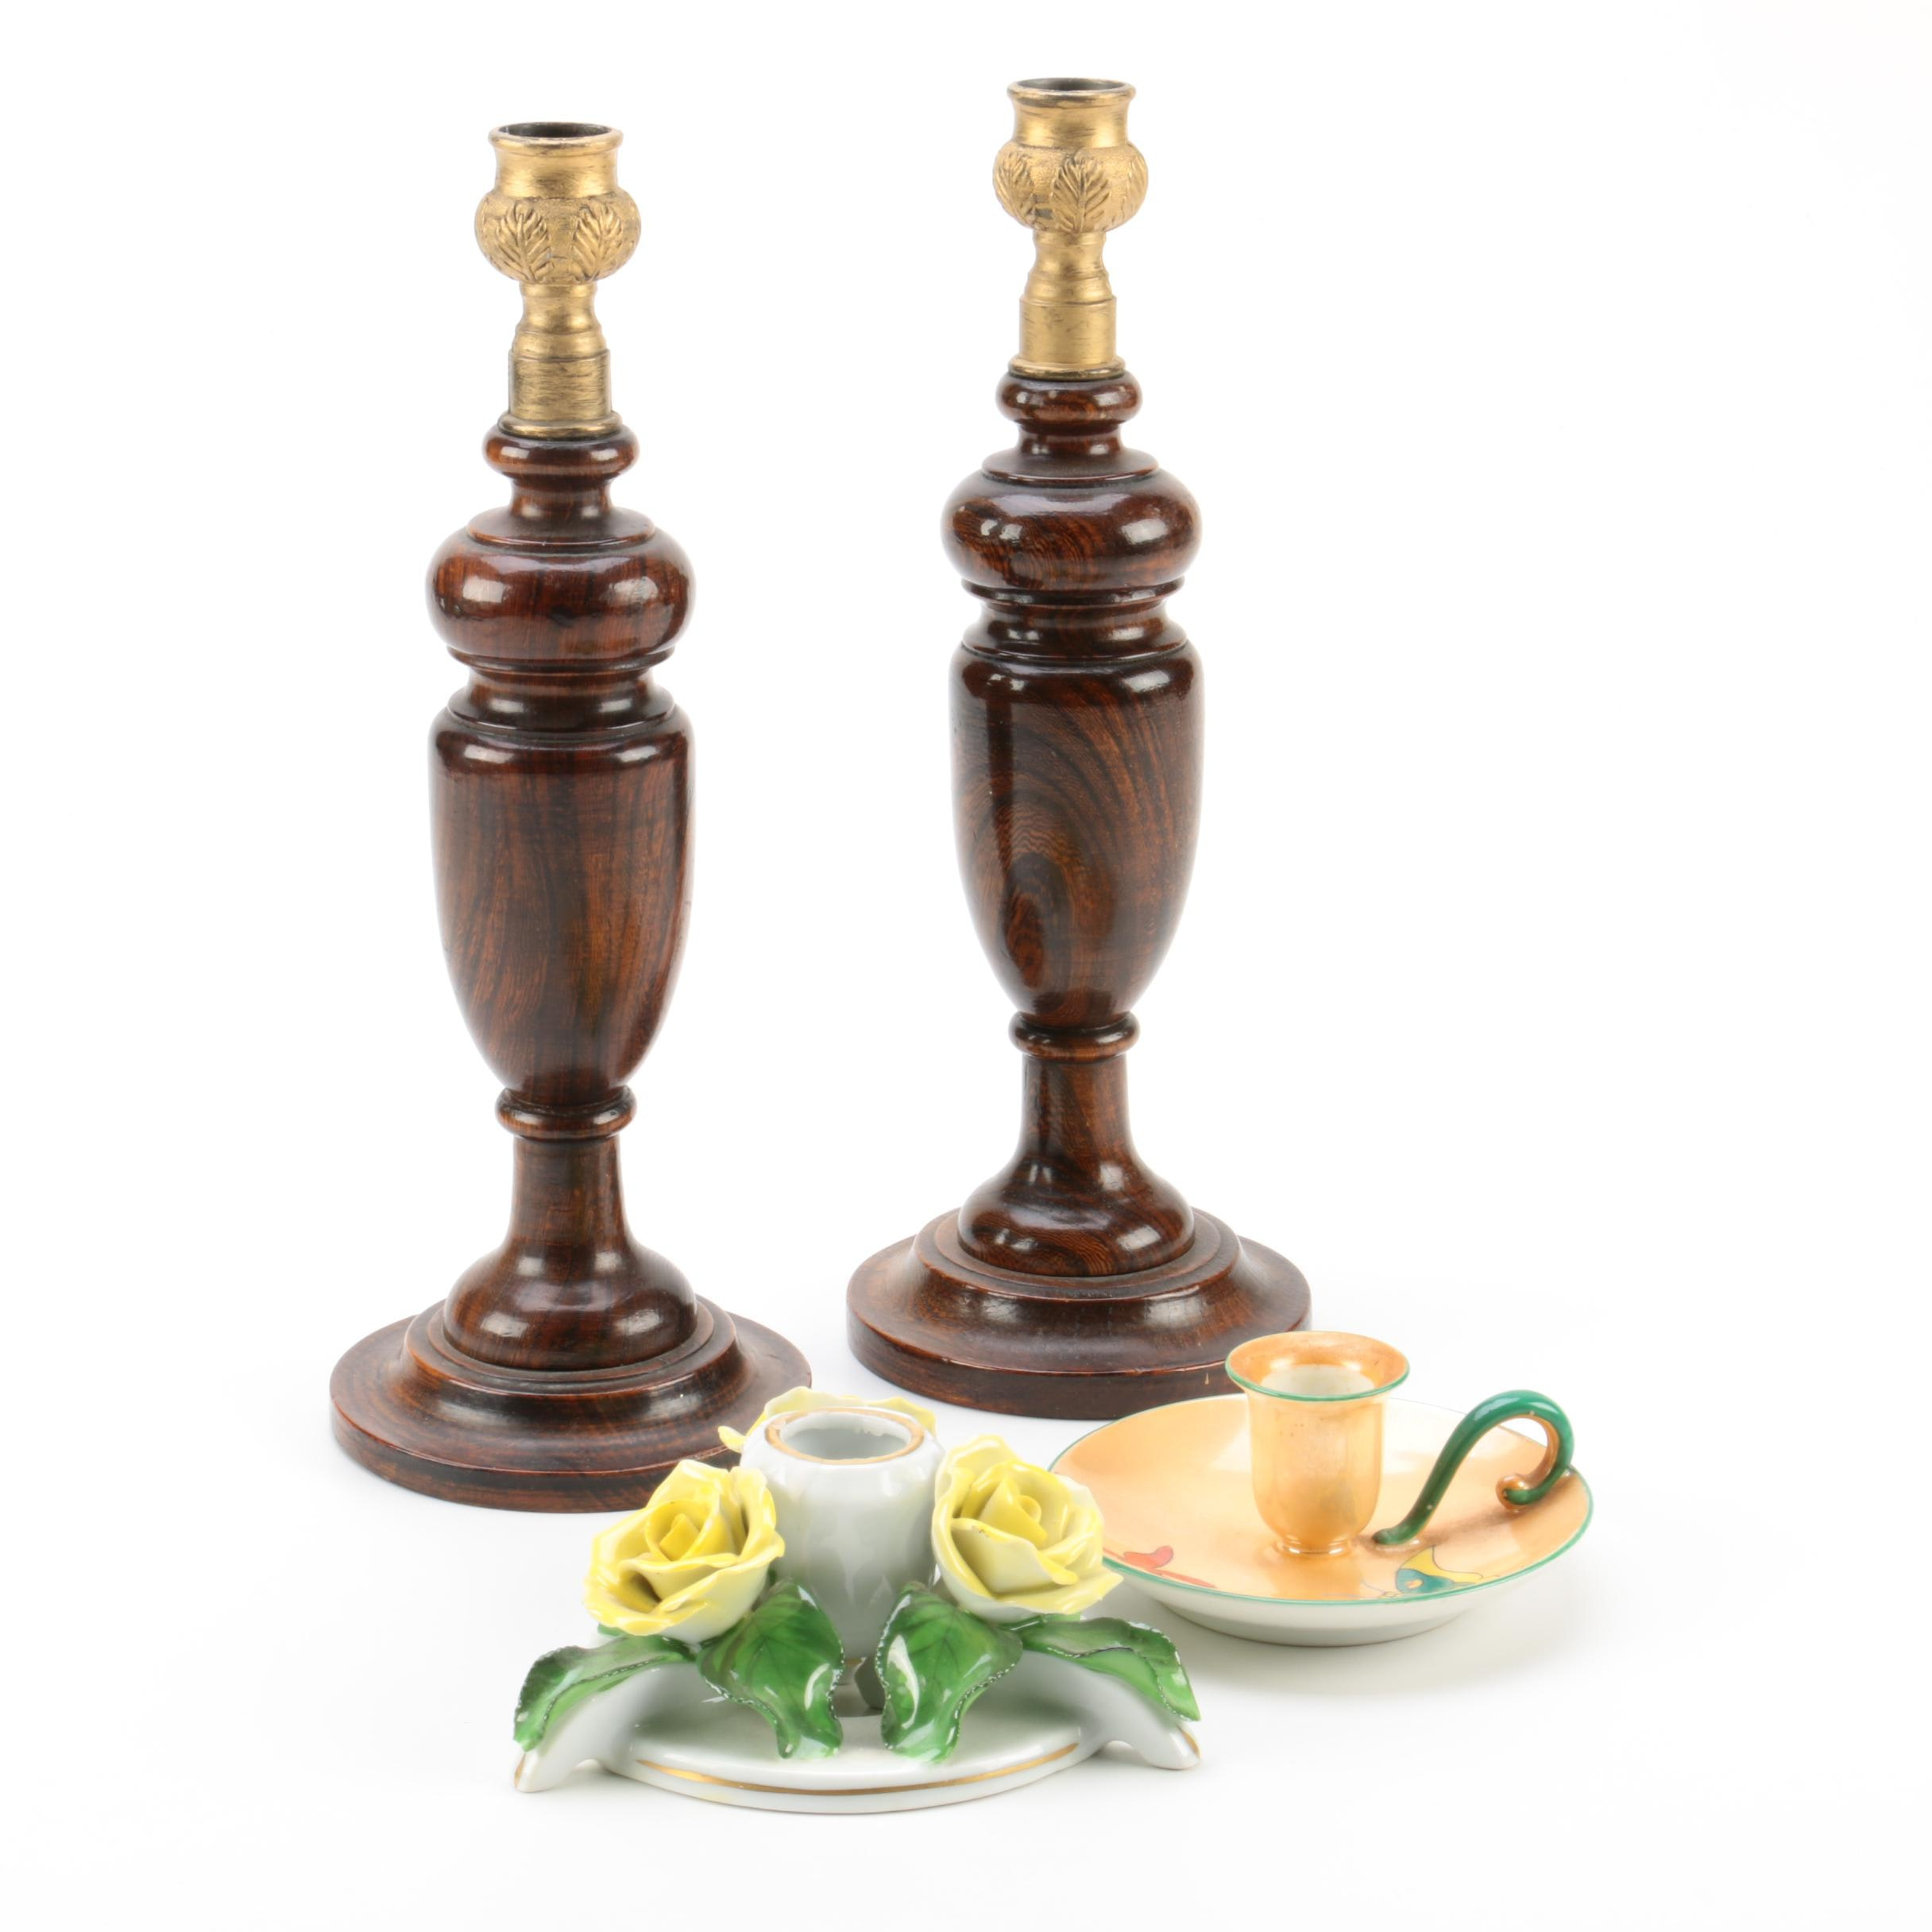 Porcelain and Wooden Candle Holders Featuring Herend and Noritake